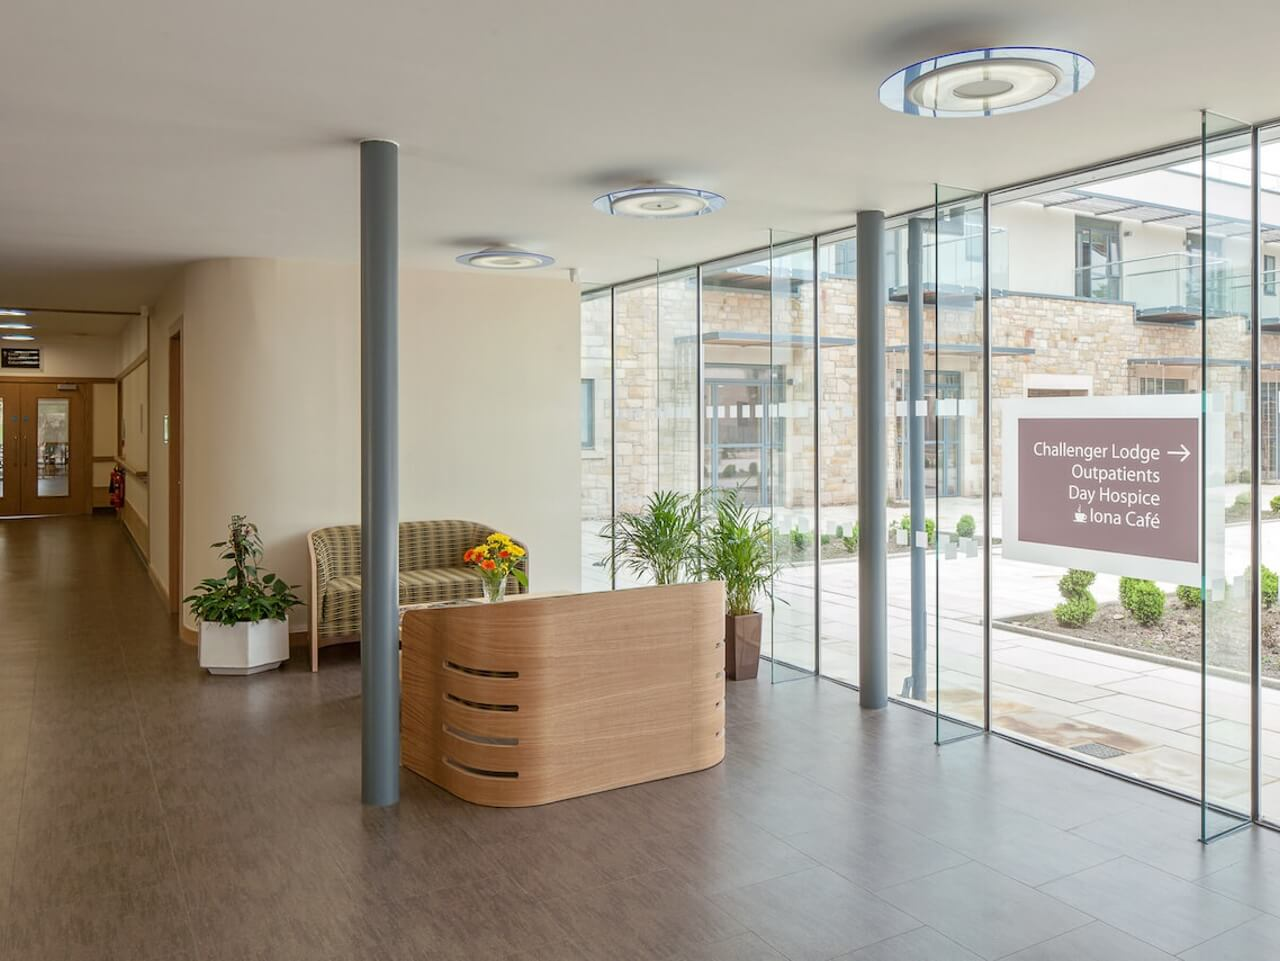 The entrance of St Columbas Hospice showing signage and etching on the glass walls to the outside